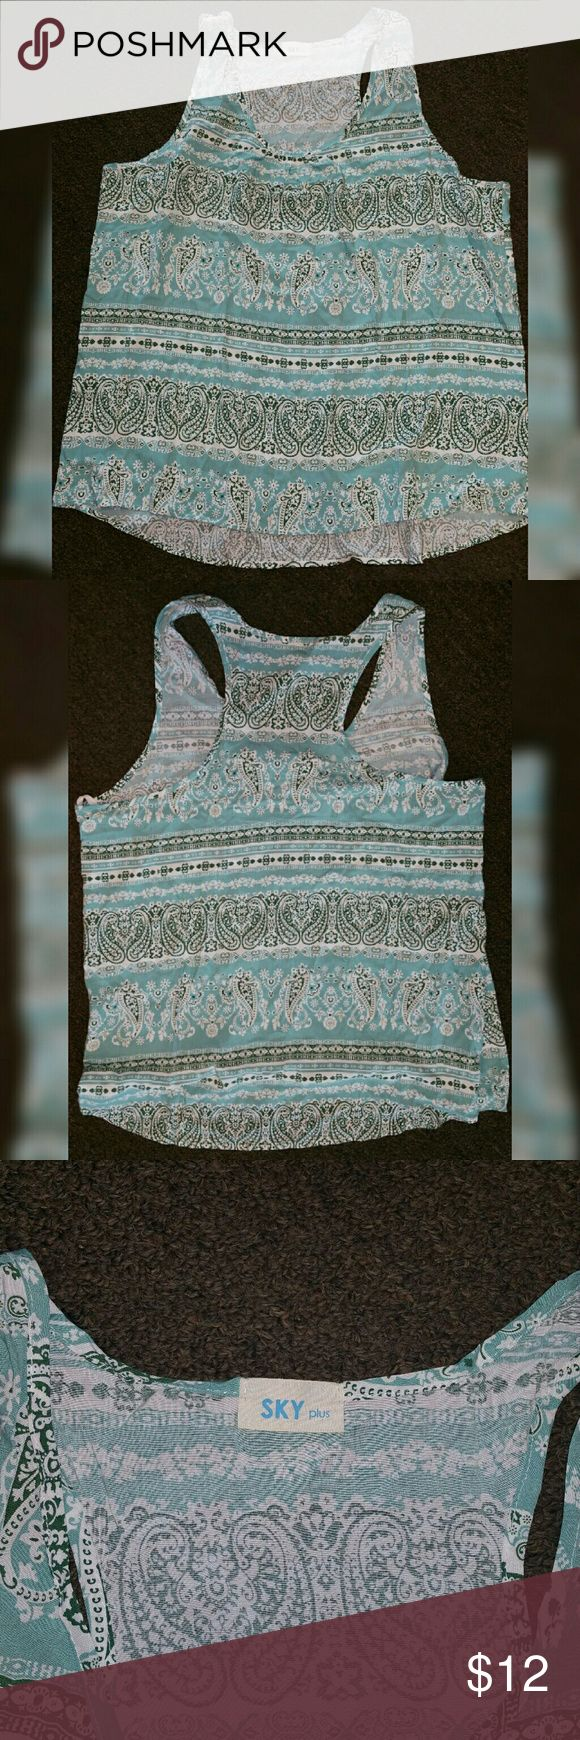 Blue Green and white racer back tank Flowy and light for summer, perfect in the heat. Never worn. Sky Plus Tops Tank Tops